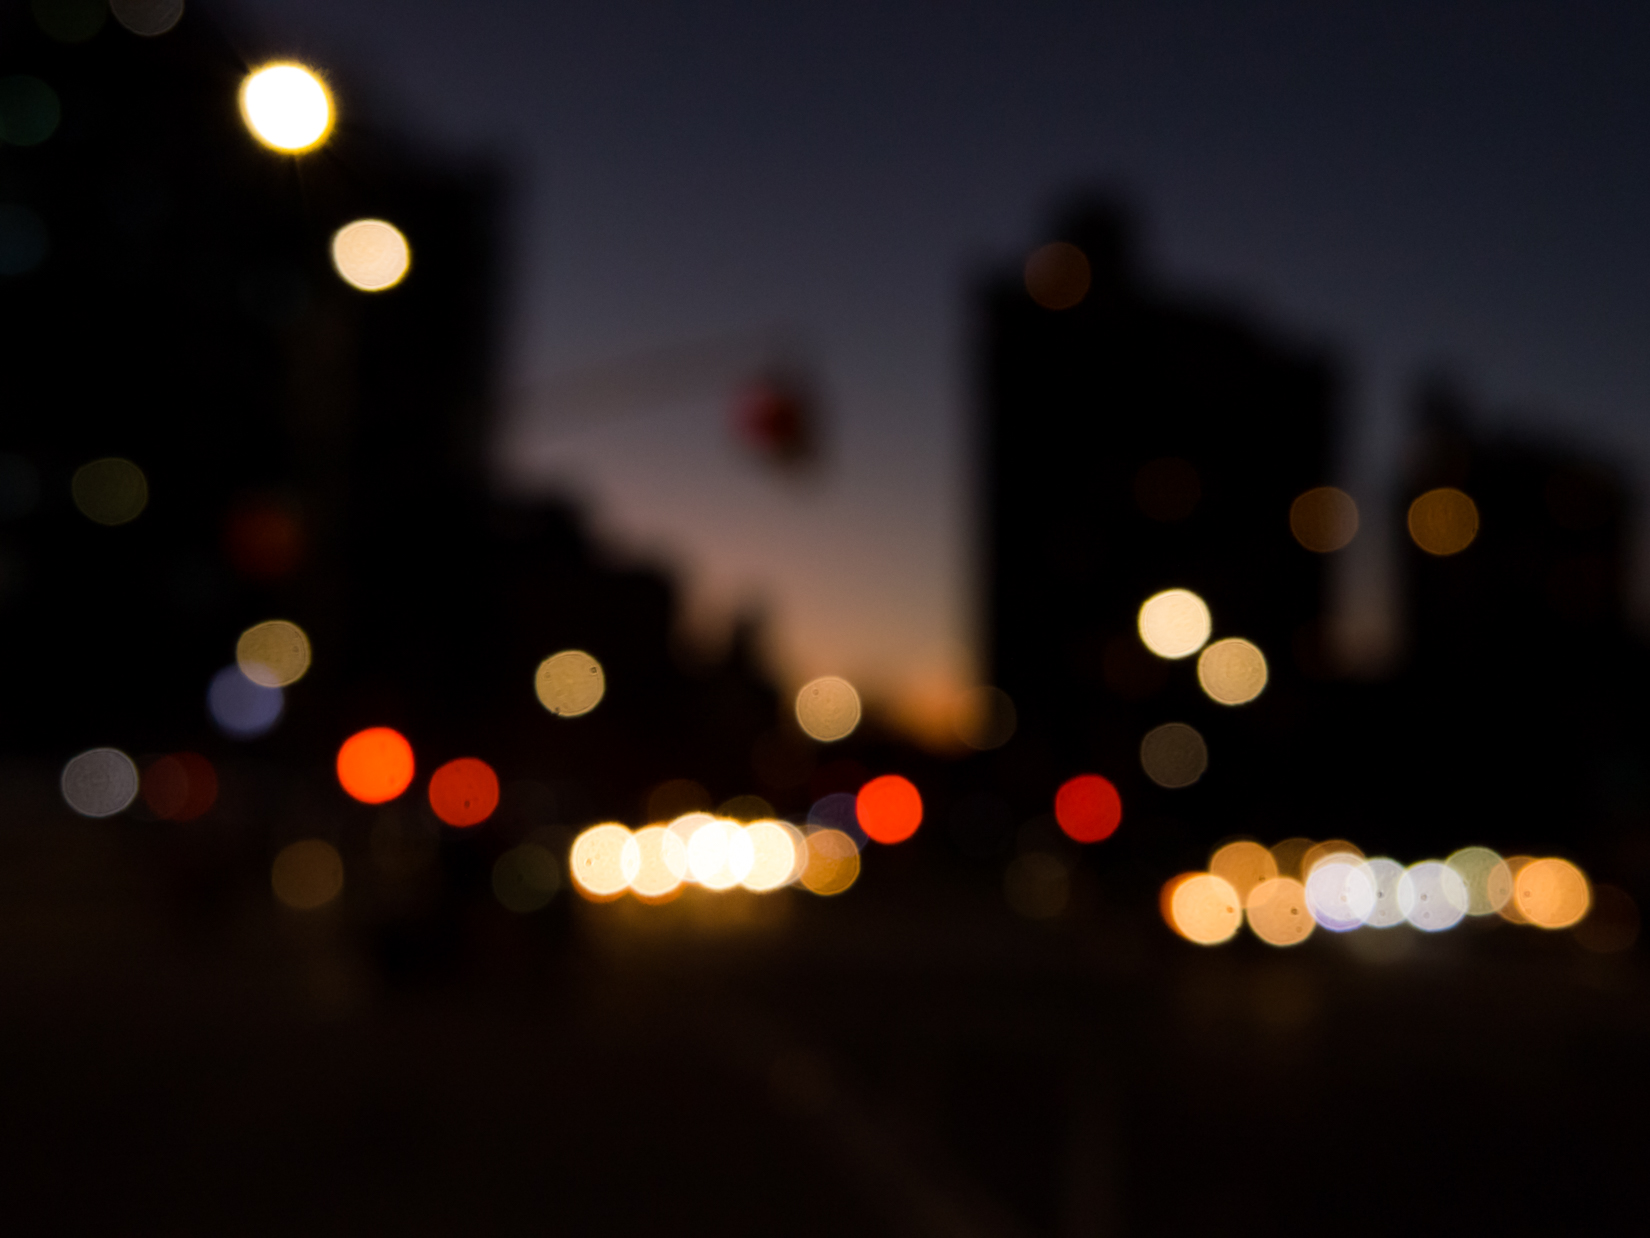 Blurred City Street at Sunset